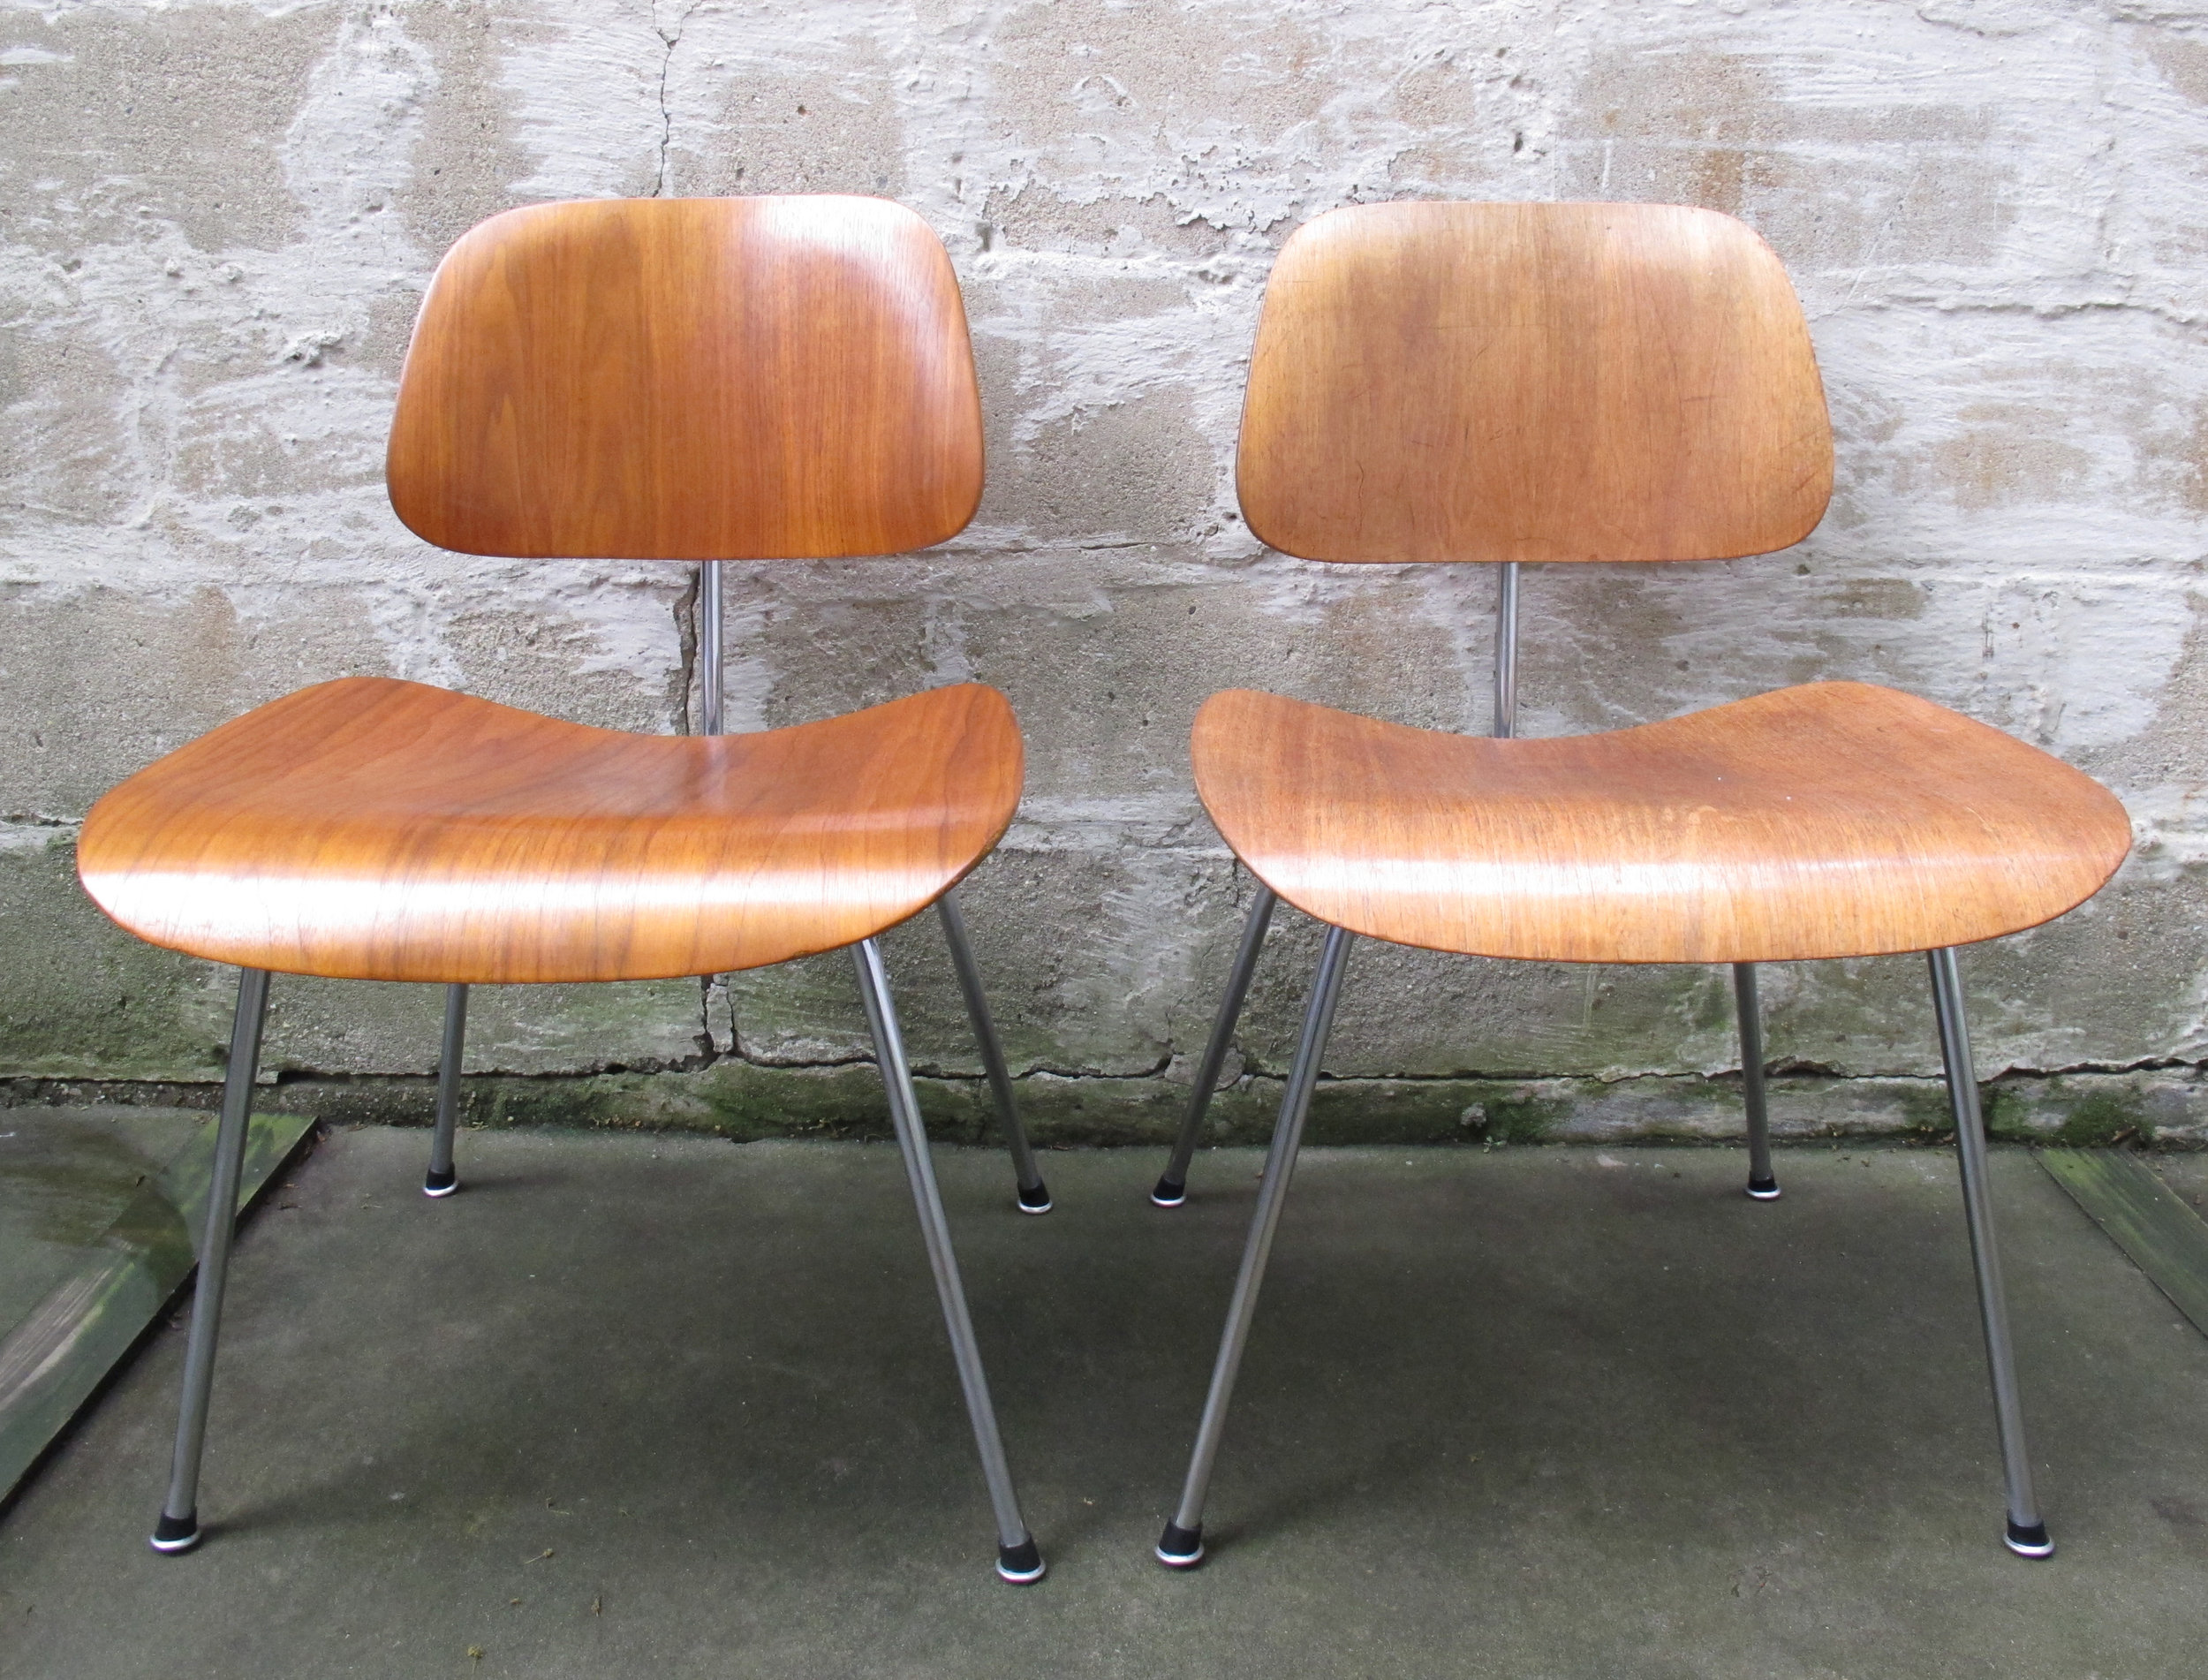 MID CENTURY EAMES MOLDED PLYWOOD 'DCM' CHAIRS BY HERMAN MILLER